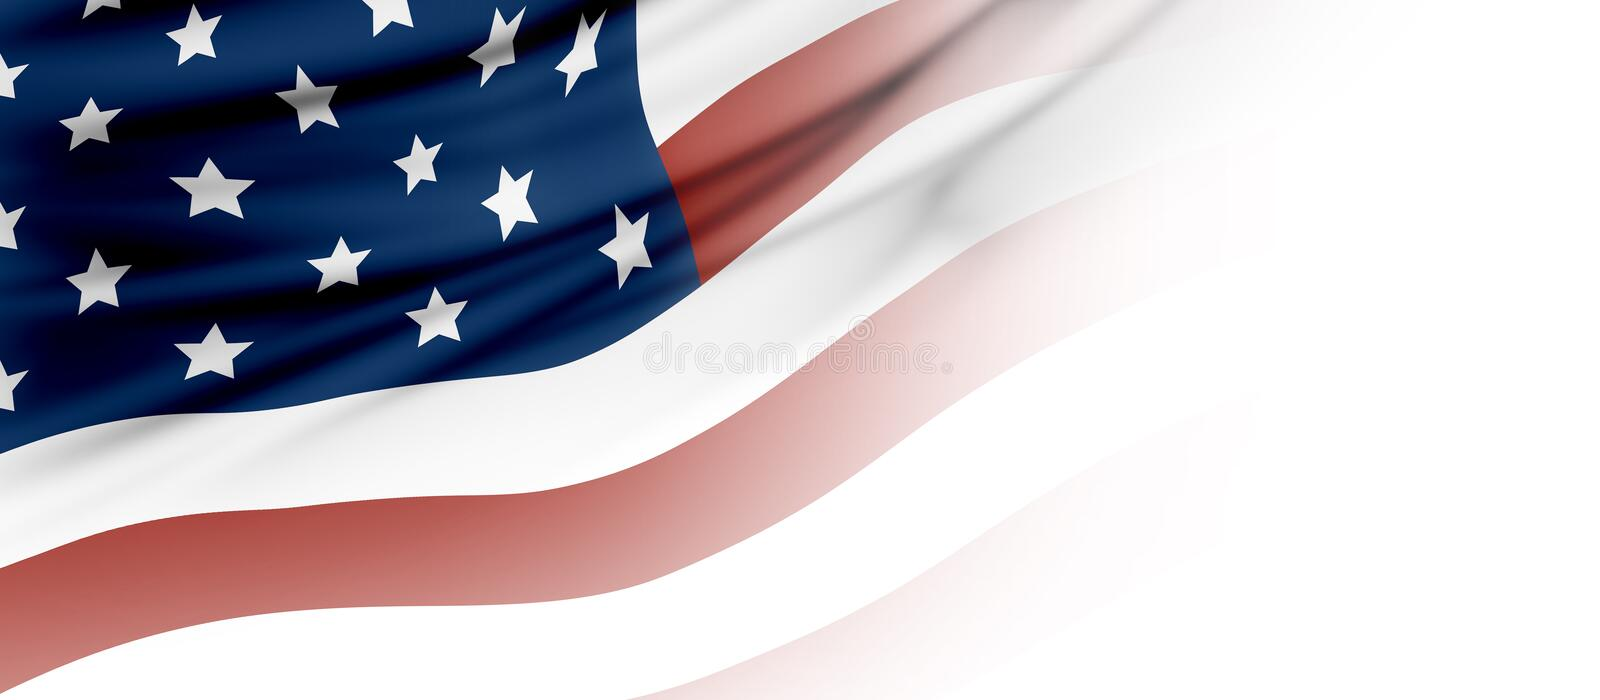 USA or American flag background with copy space stock illustration